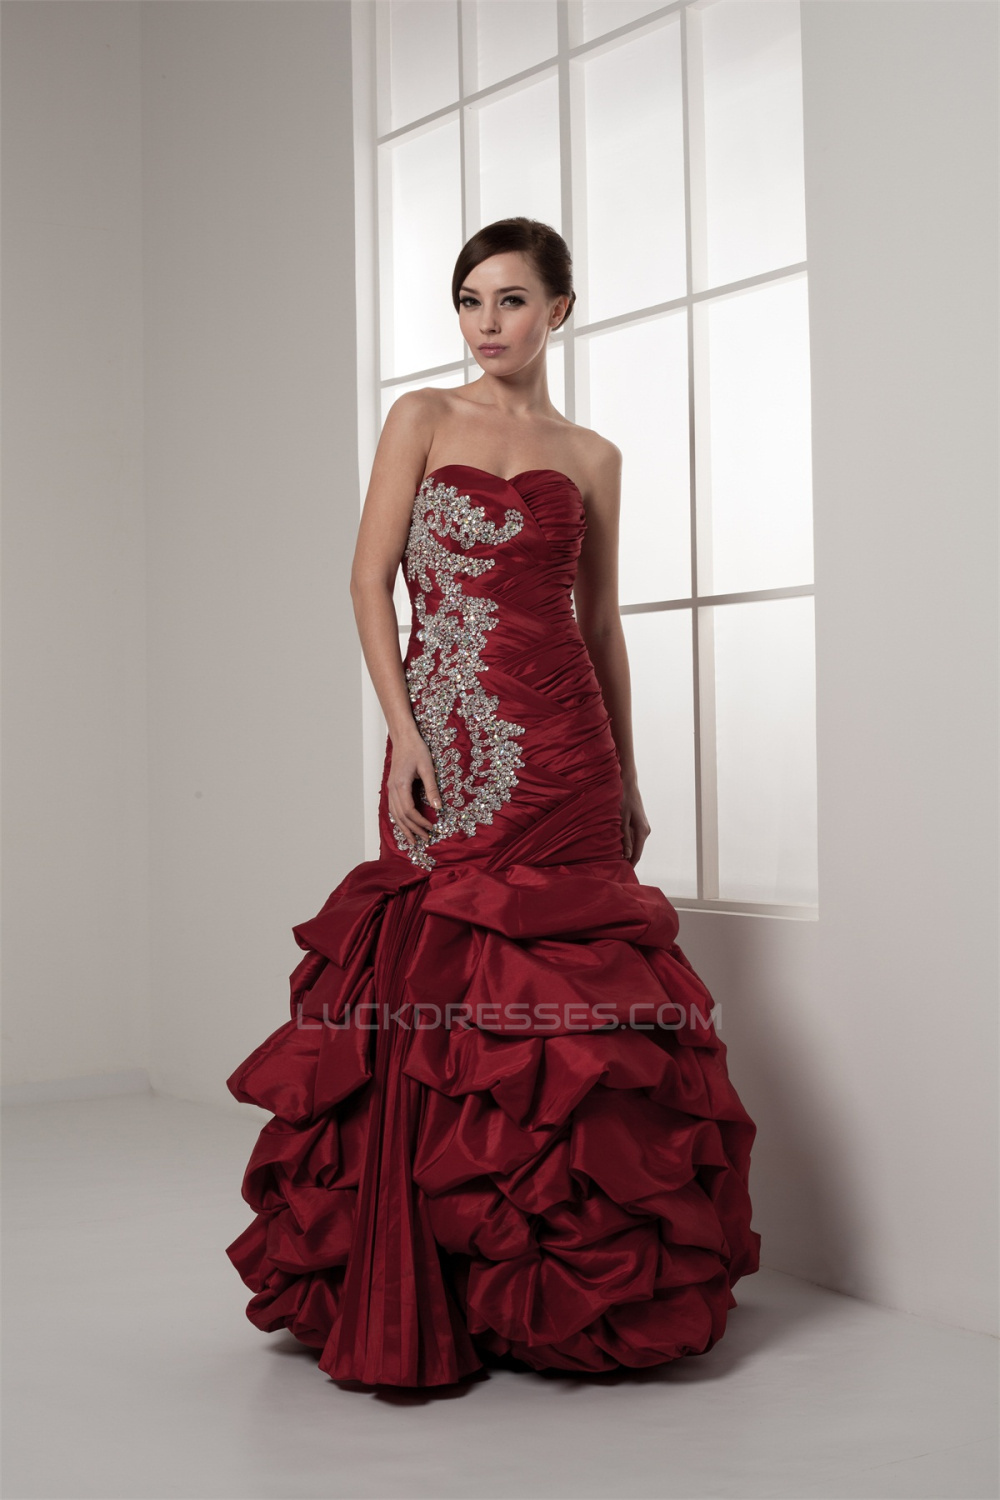 Sleeveless Floor-Length Sweetheart Mermaid/Trumpet Prom/Formal ...